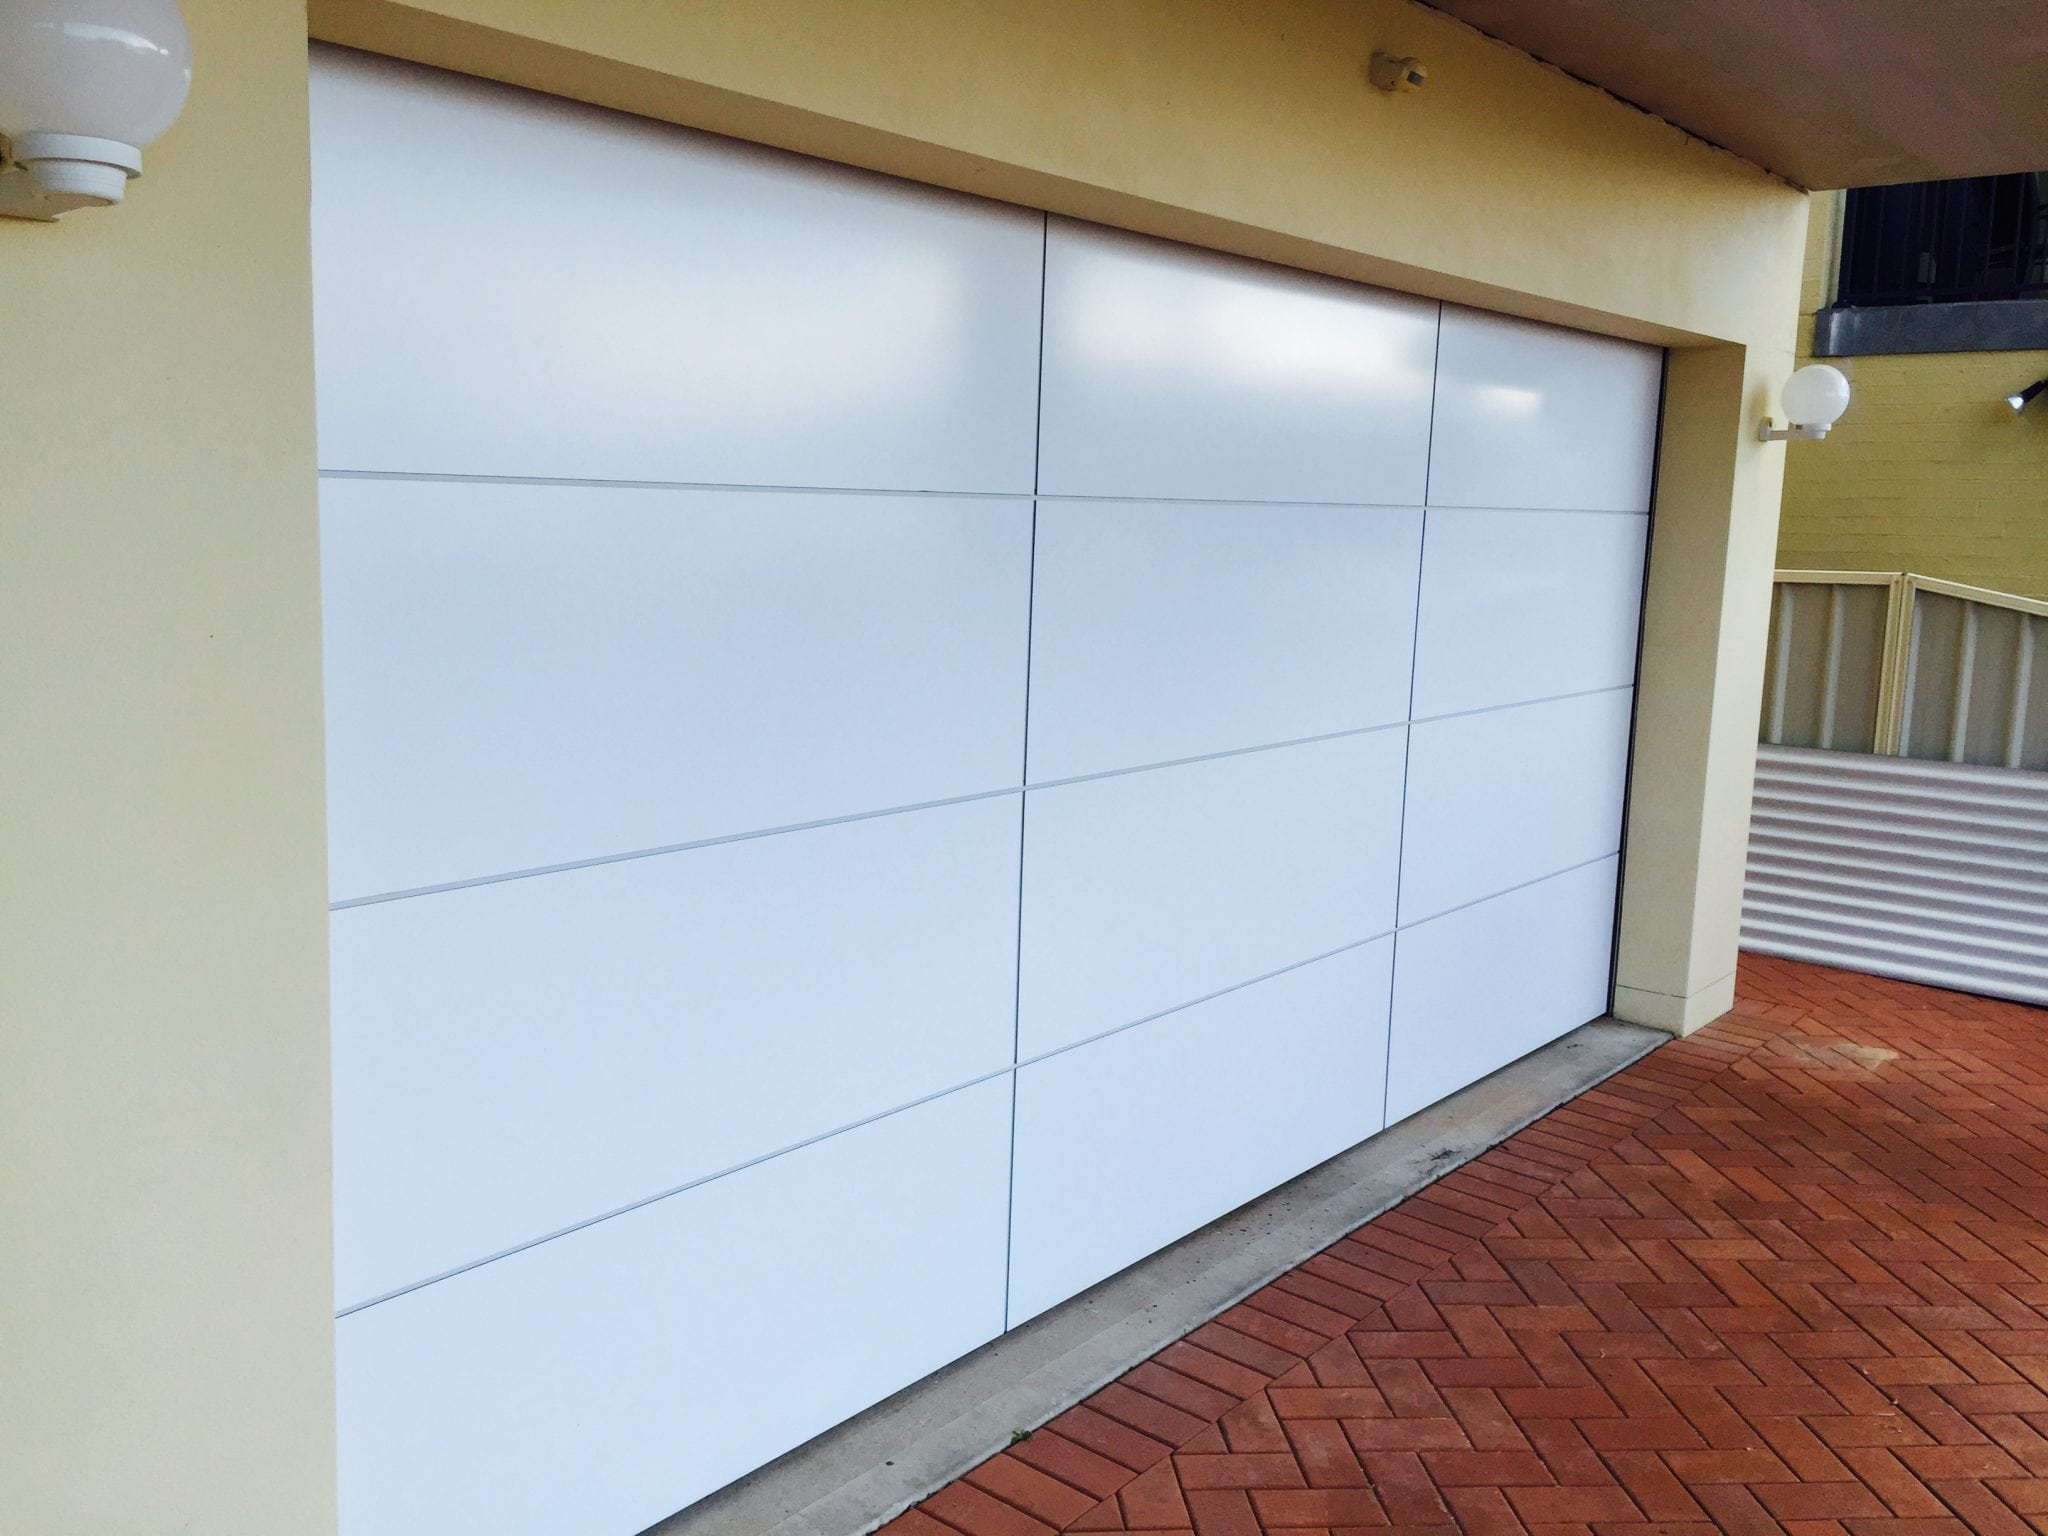 panel lift, Garage Doors Newcastle, garage roller doors, Garage Door Opener